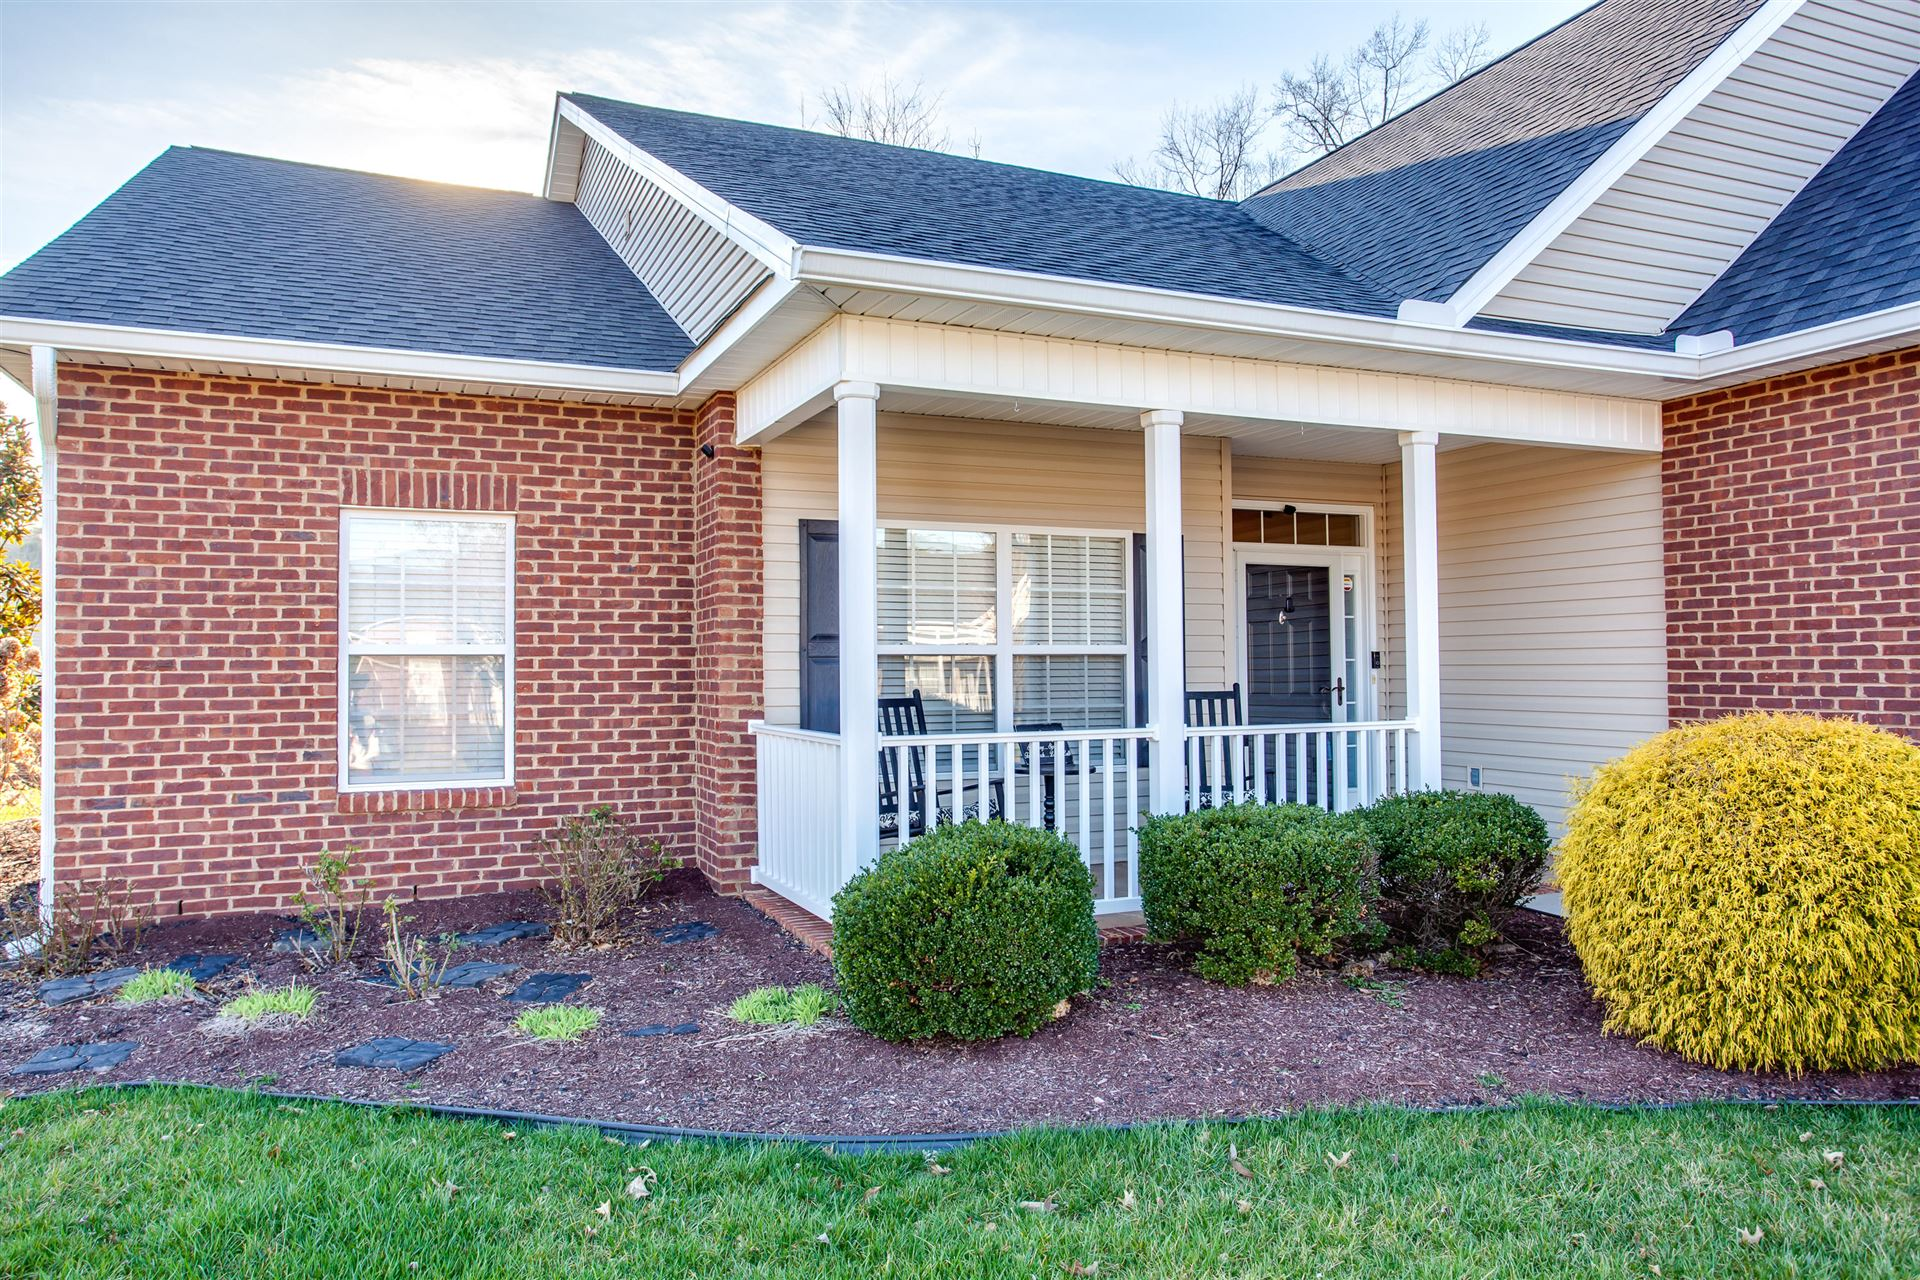 Photo of 1603 Ashby Field Lane, Knoxville, TN 37918 (MLS # 1108223)